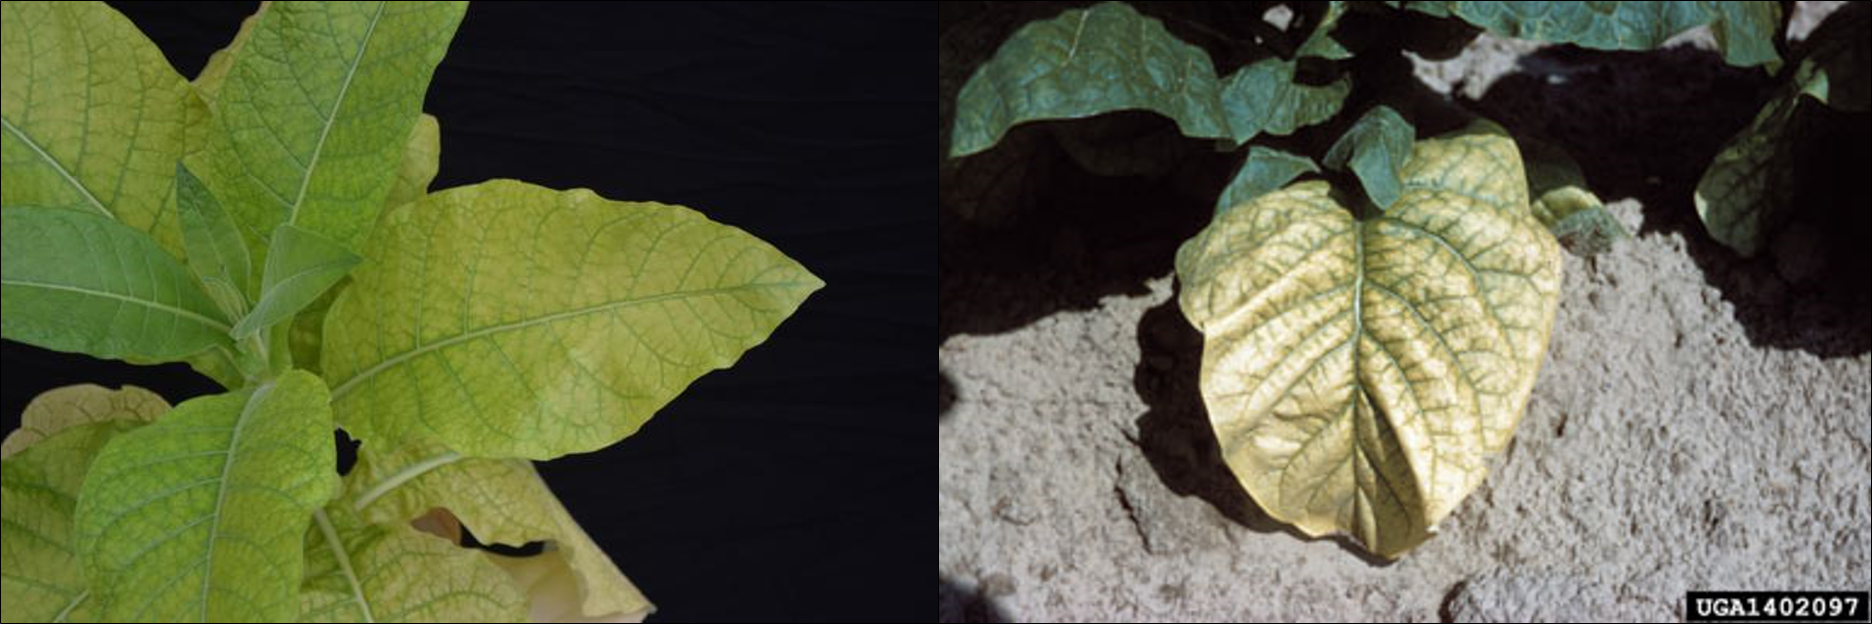 """Magnesium deficiency is characterized by chlorosis (yellowing) of lower, older leaves and will progress into mid-stalk positions if uncorrected. Magnesium deficiency is referred to as """"sand drowning"""" because it is more commonly observed in coarse, sandy soils."""